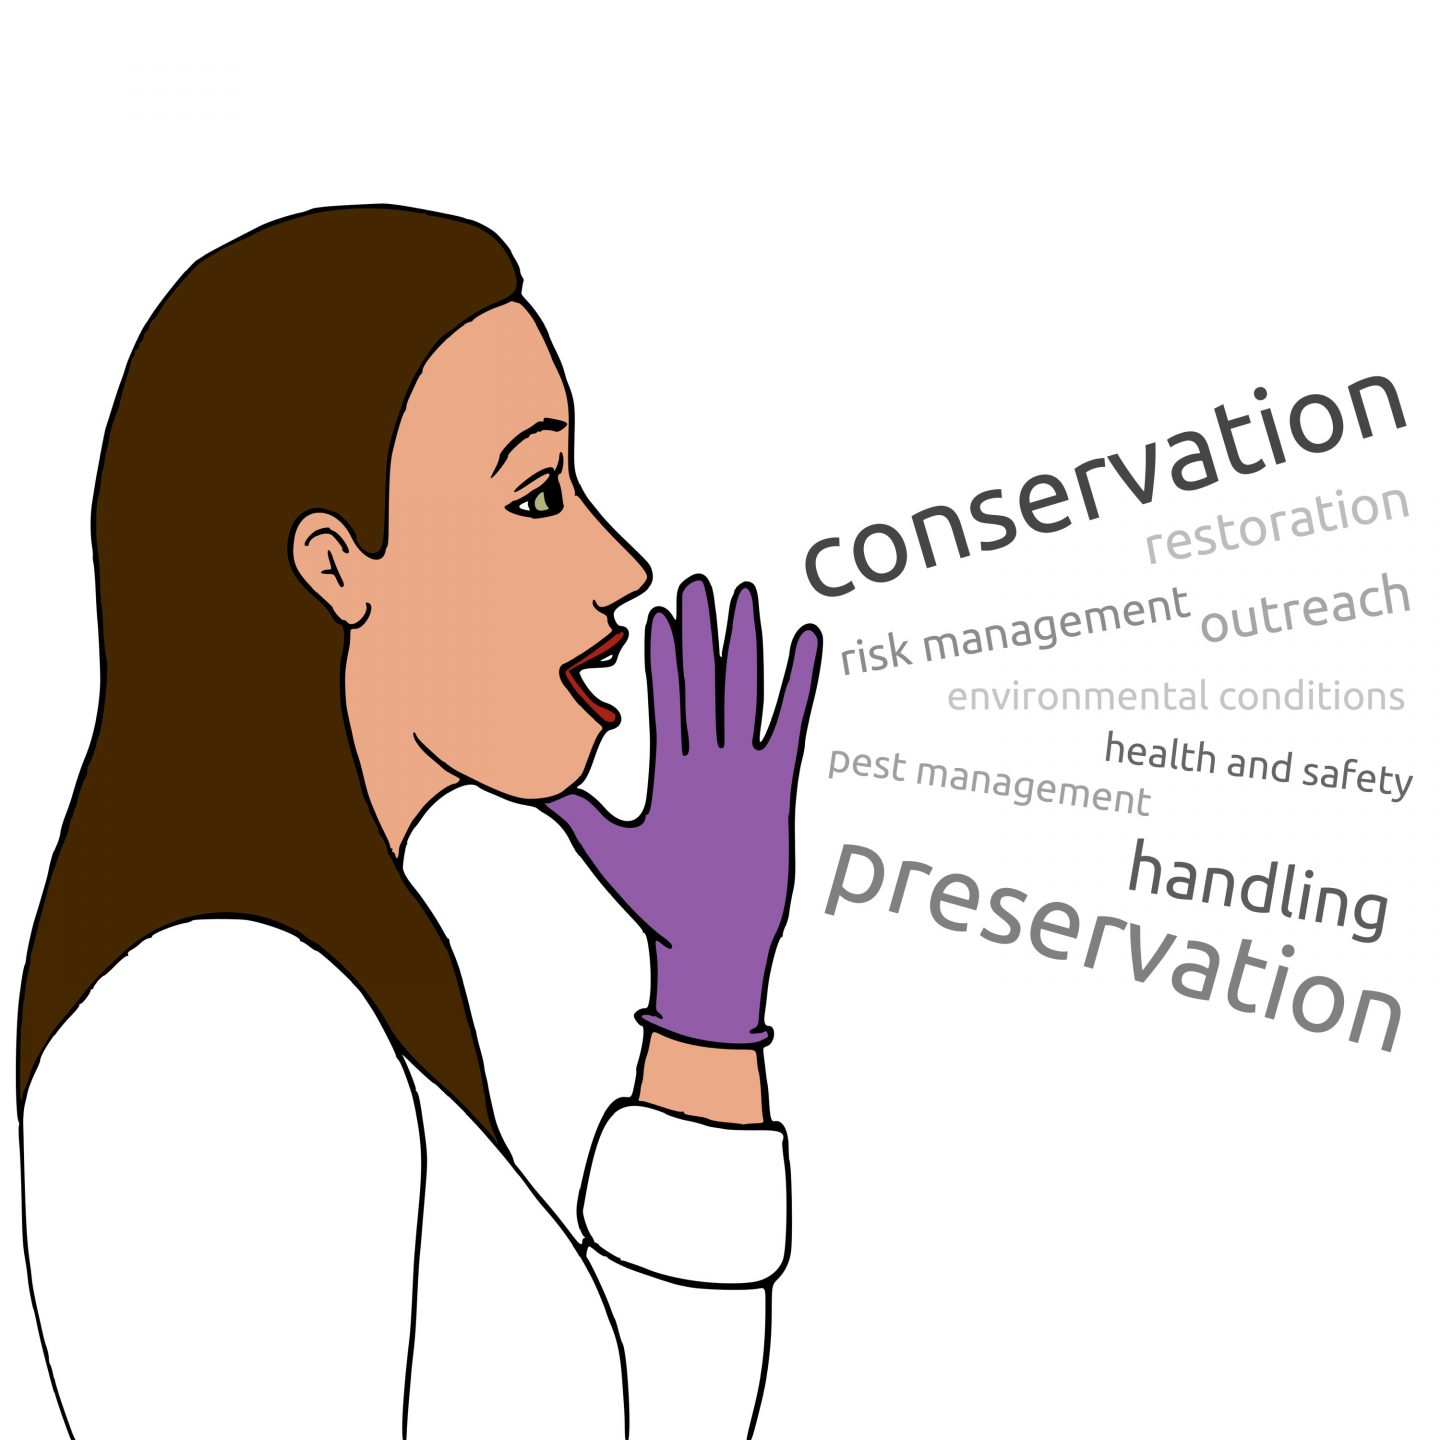 S02E07: Communicating Conservation